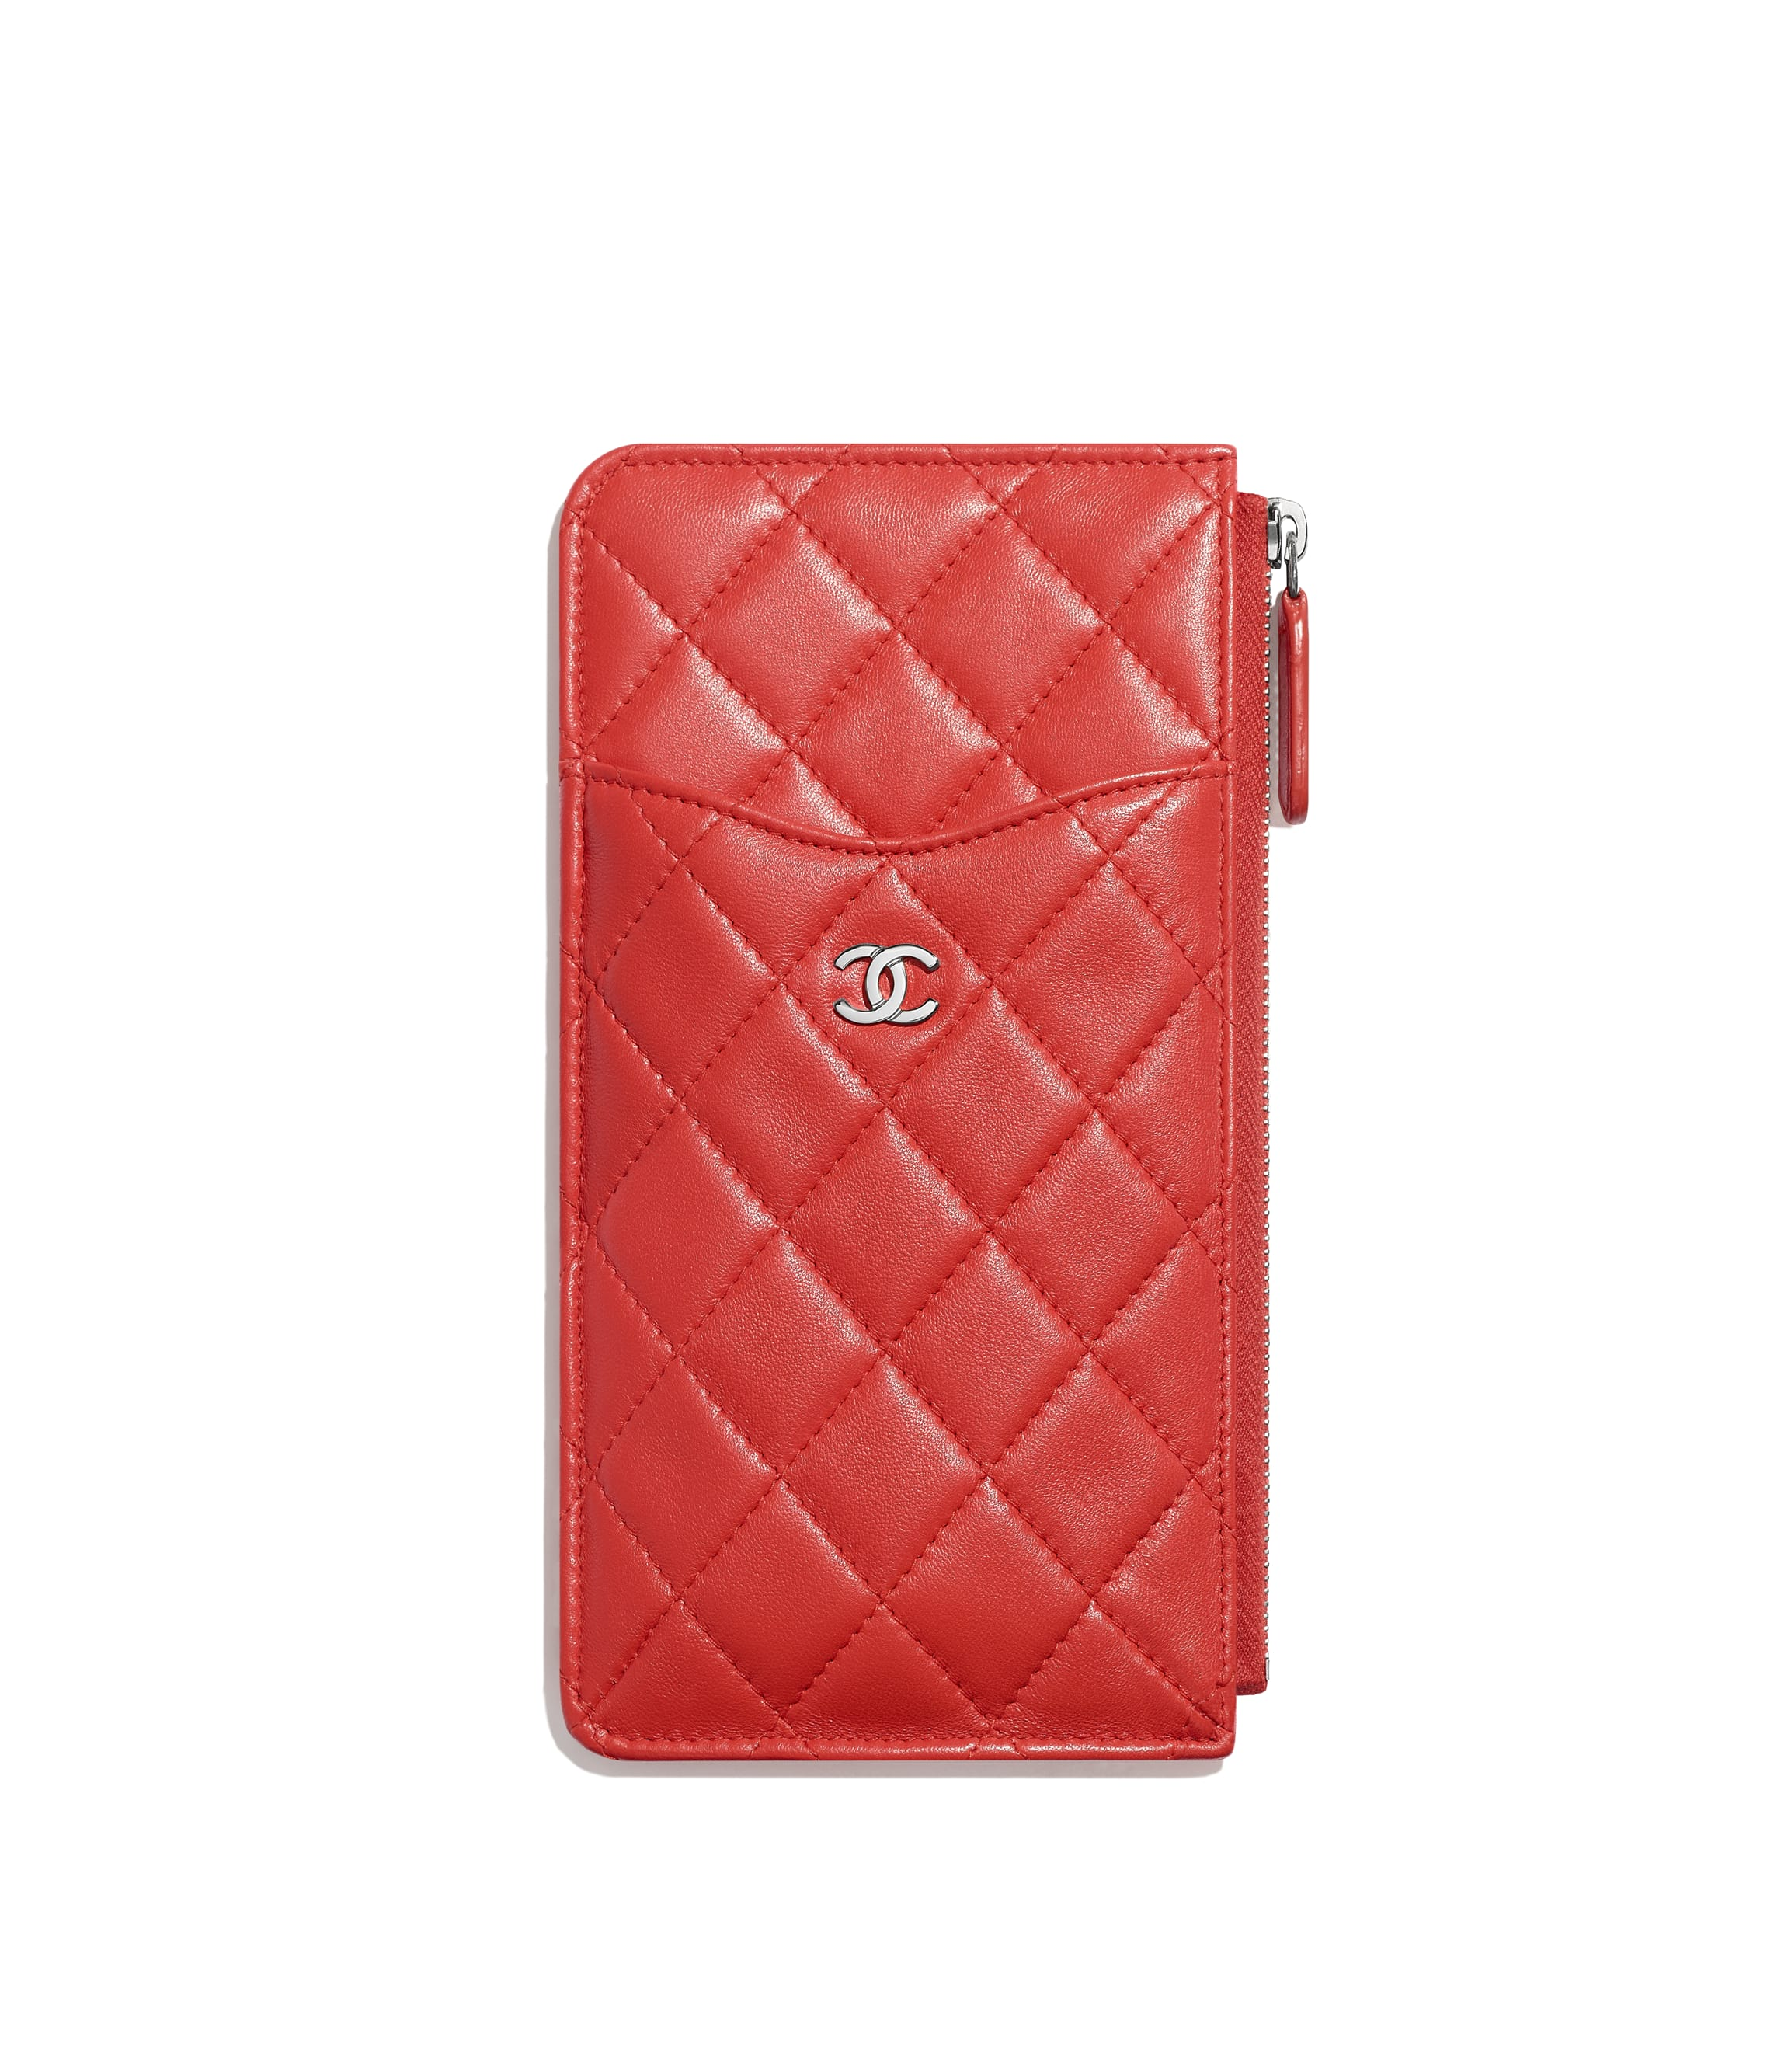 43e3bcfe3e6a2d Classic Pouch for iPhone, lambskin & silver-tone metal, red - CHANEL